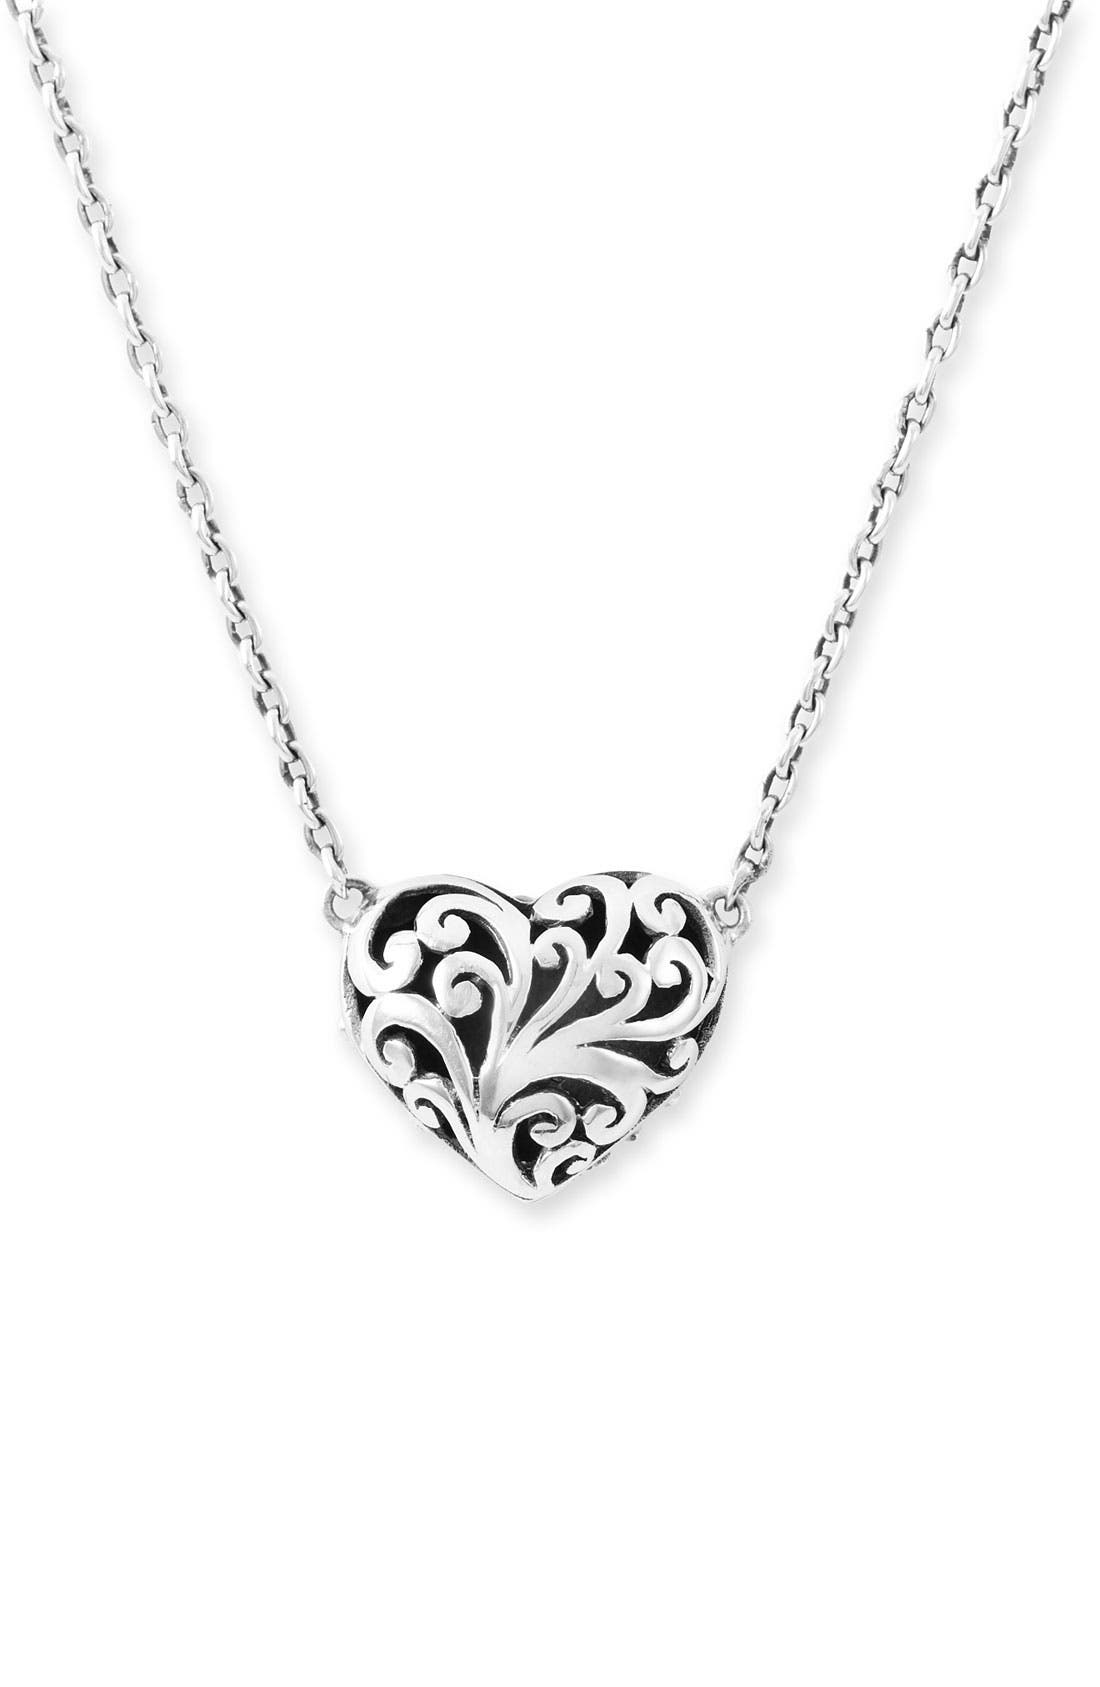 Main Image - Lois Hill Reversible Puff Heart Pendant Necklace